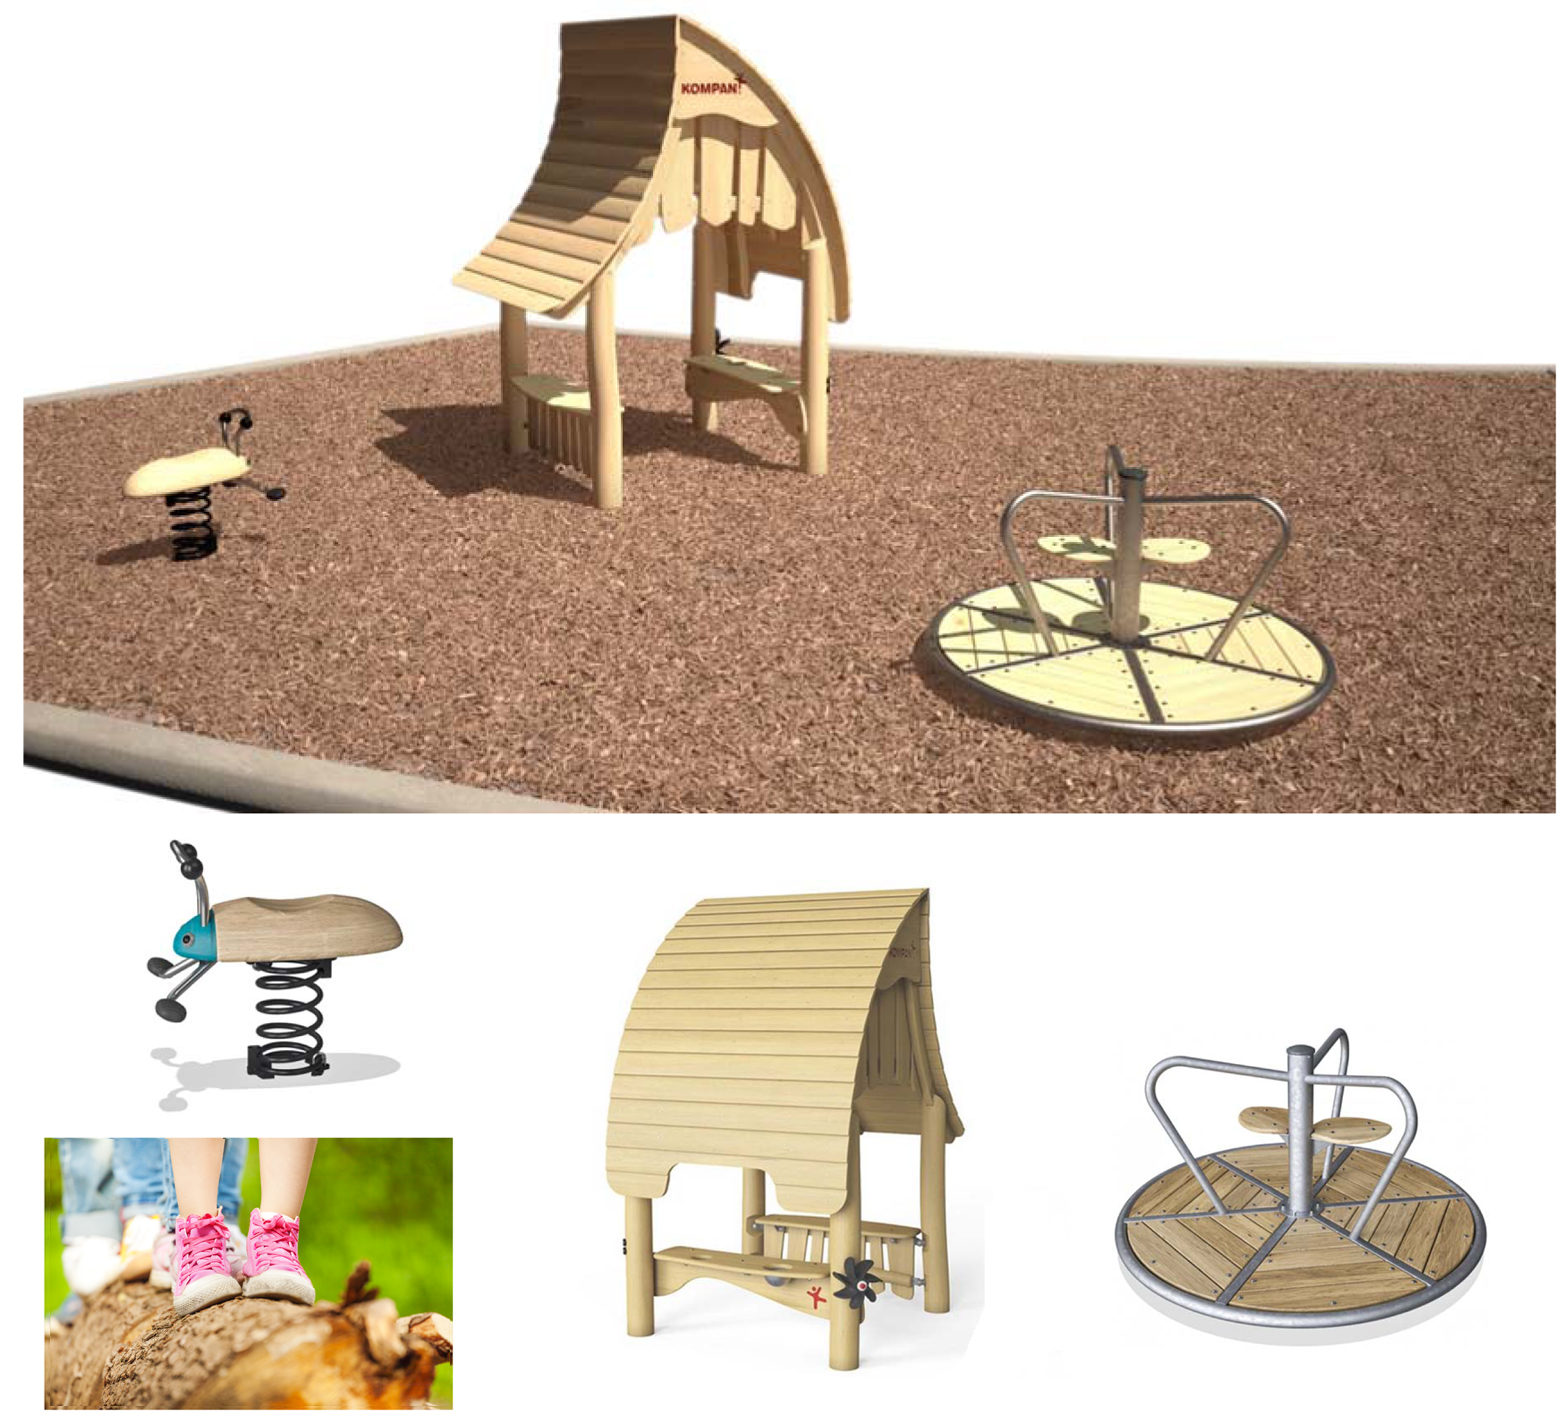 Playground option 2